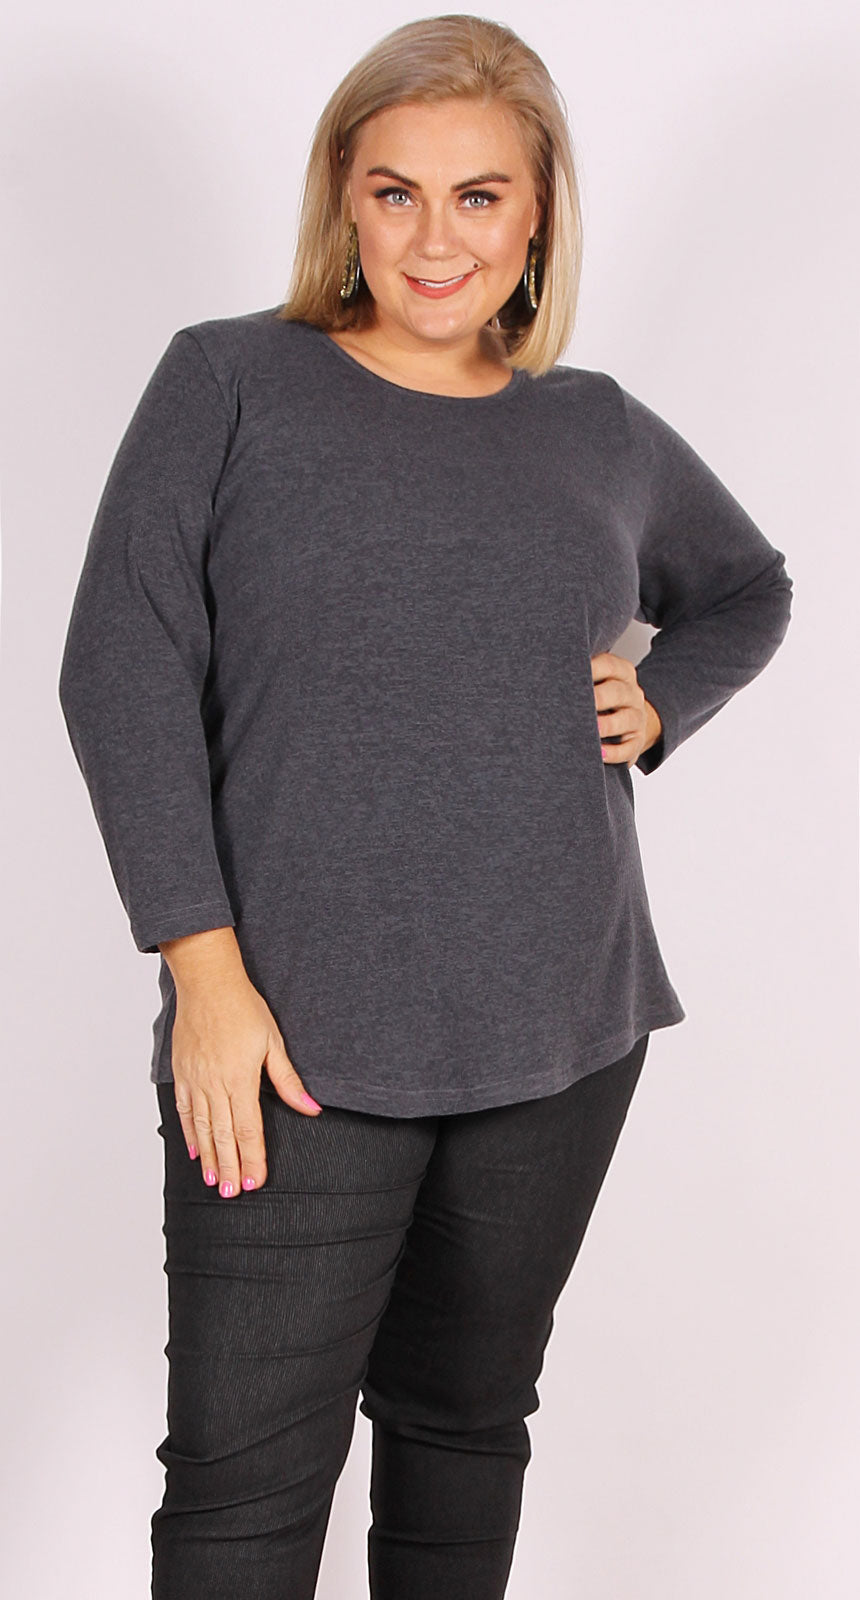 Soft Touch Knit Crew Charcoal